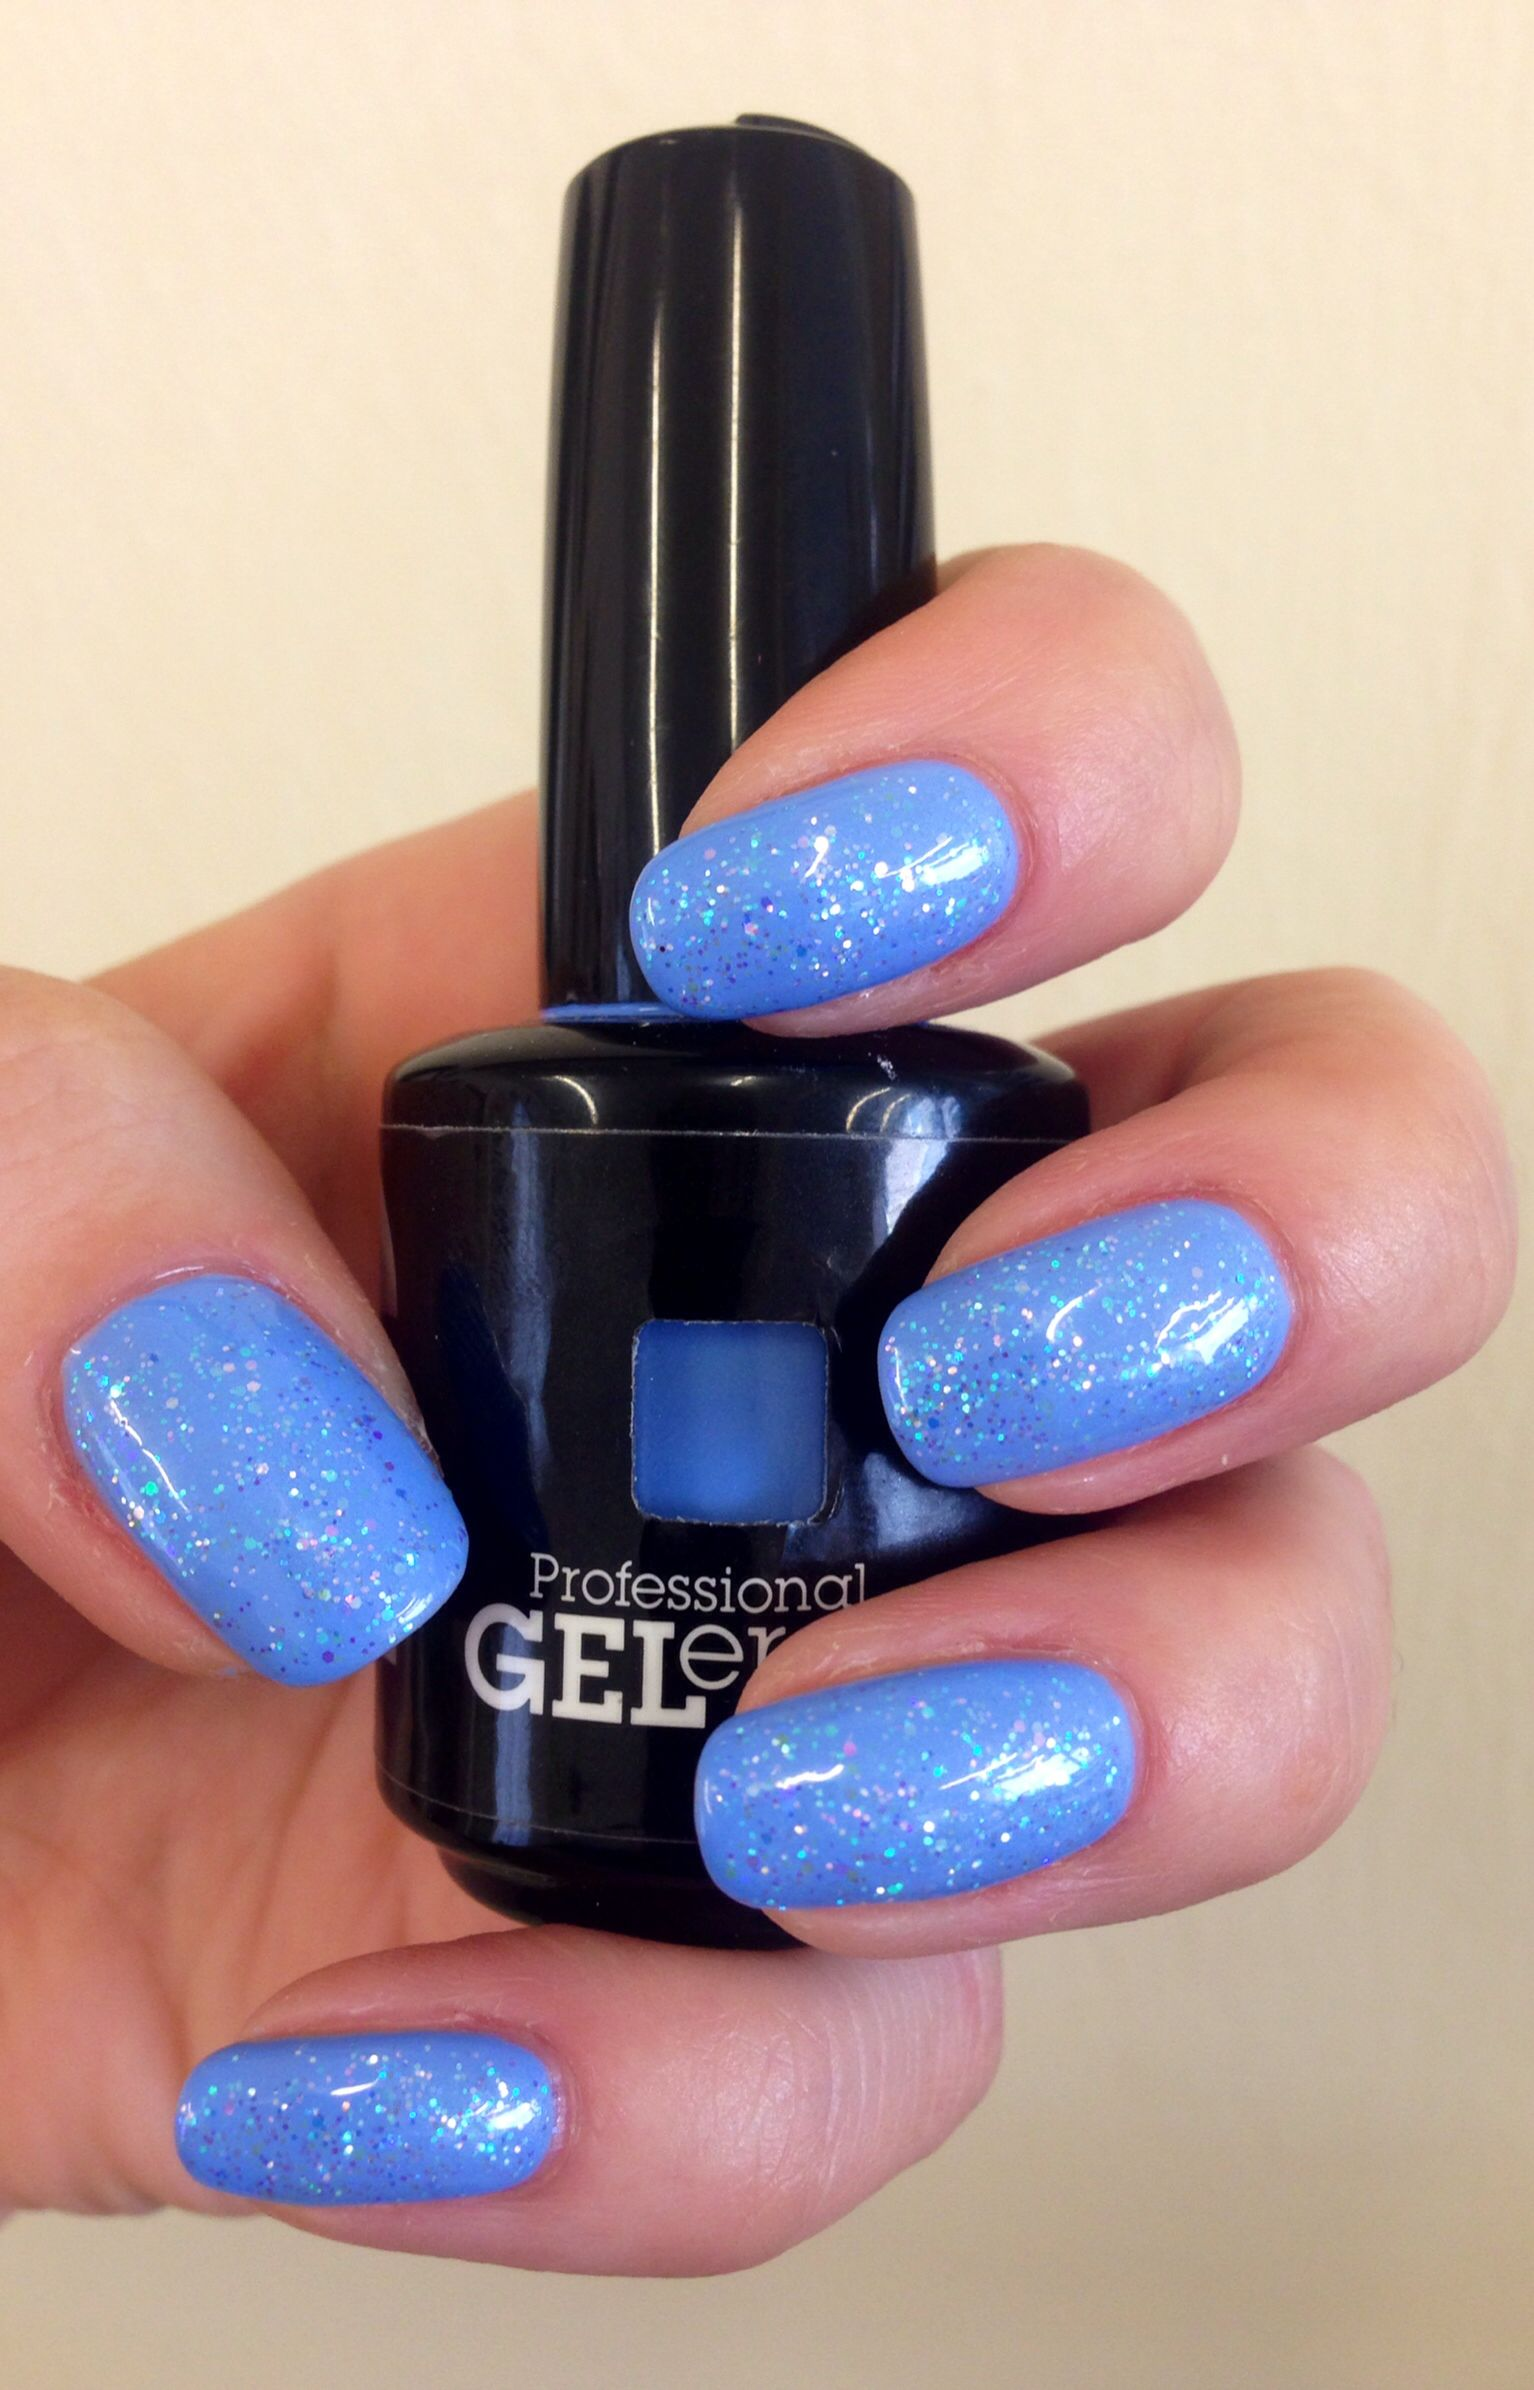 Popular fashion nails uxbridge - Geleration S True Blue With A Sprinkle Of Time To Sparkle Glitter